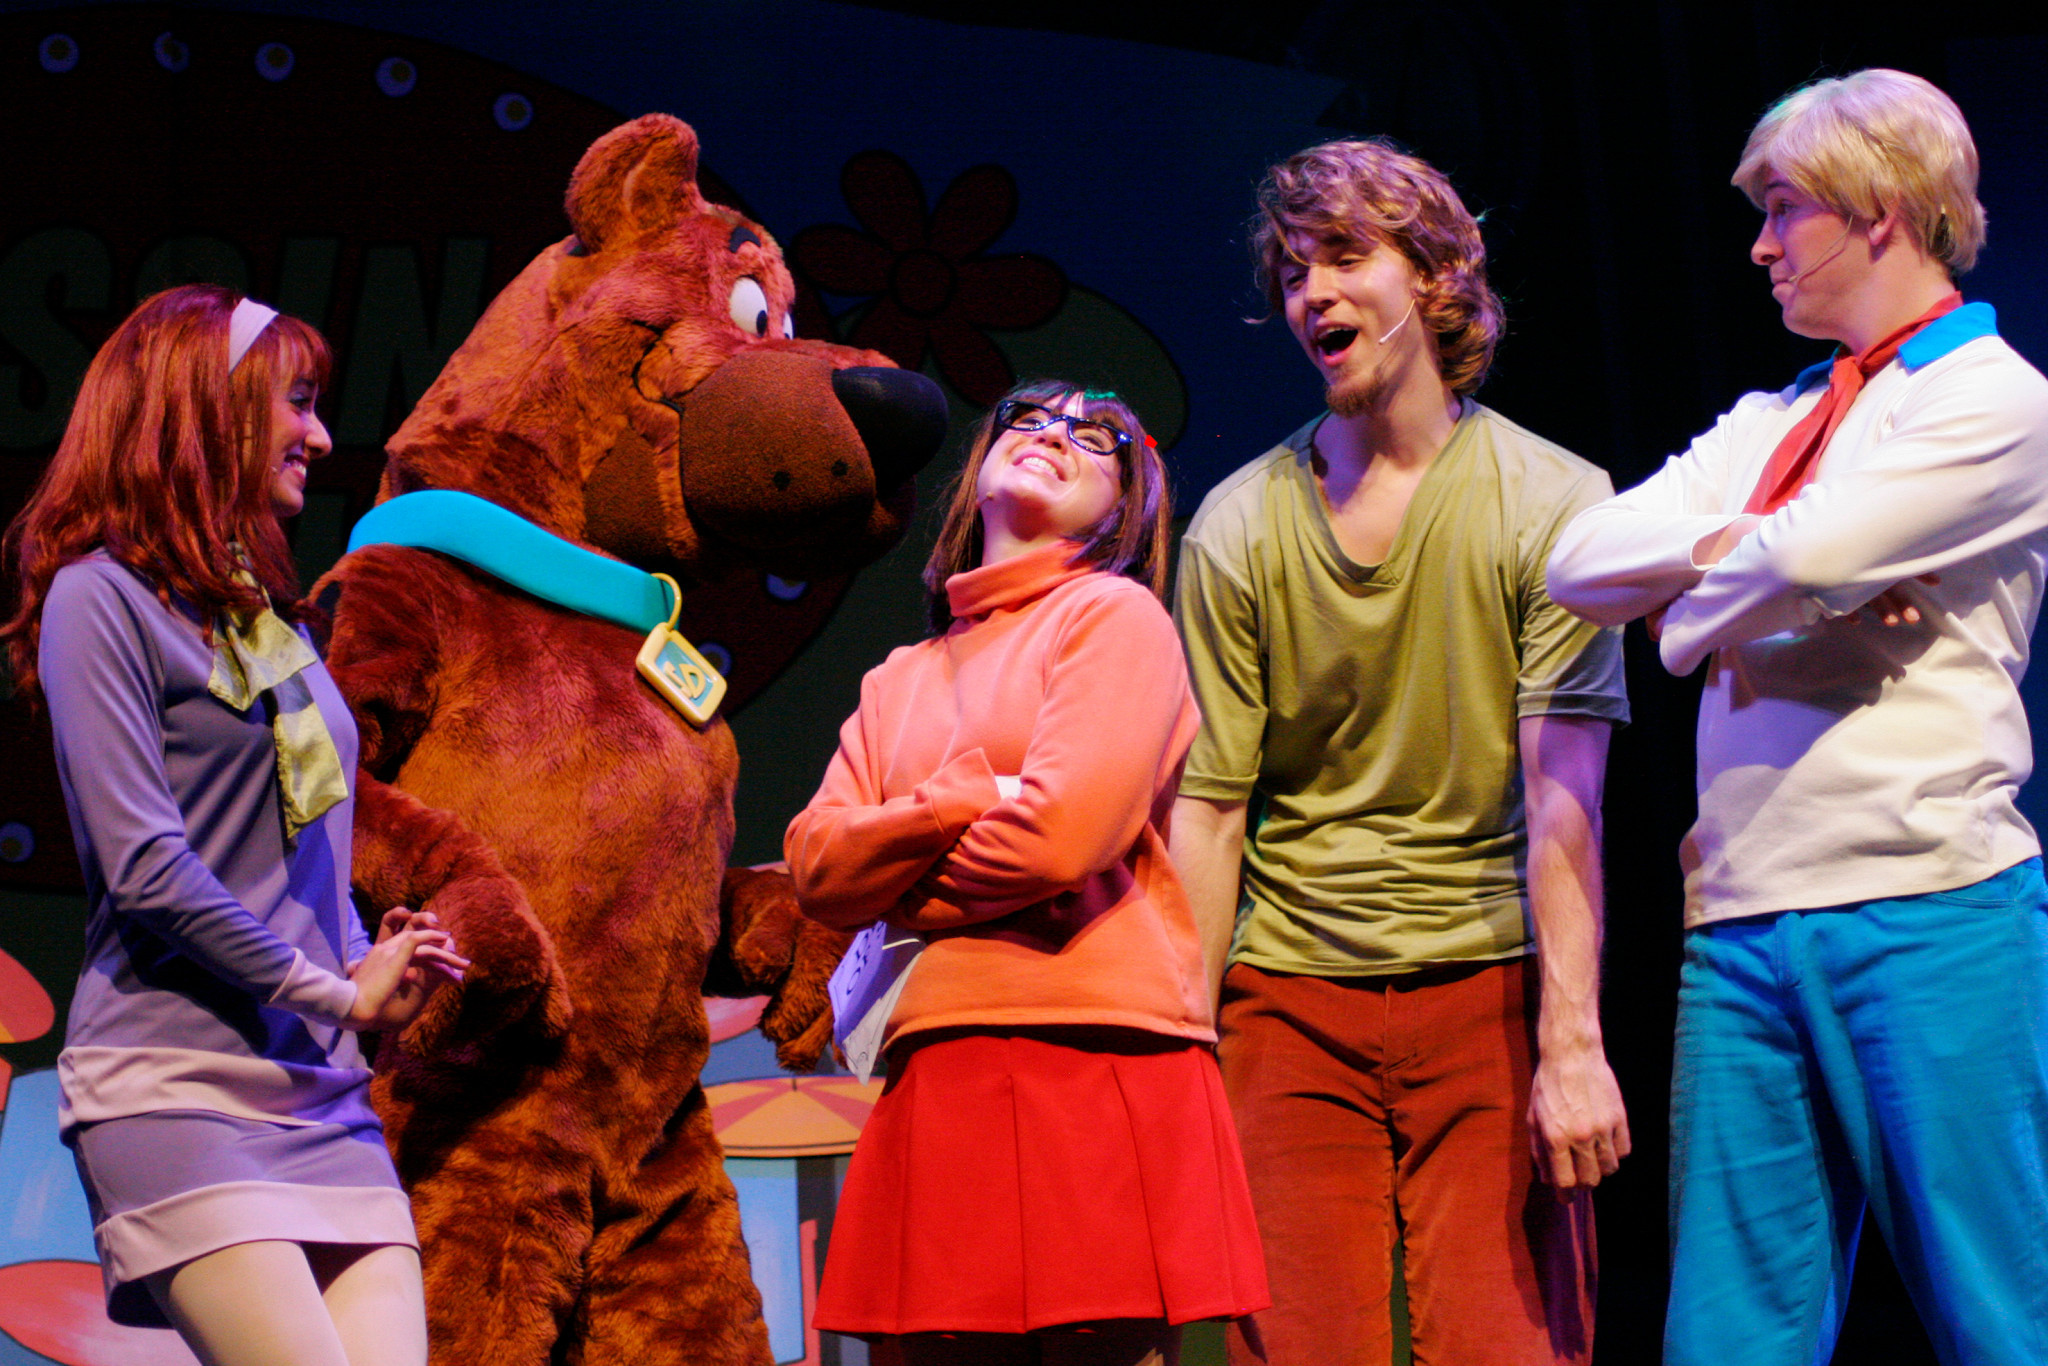 Scooby-Doo and the Mystery Inc. Gang in Scooby-Doo Live! Musical Mysteries, presented by Warner Bros. Consumer Products and Life Like Touring.